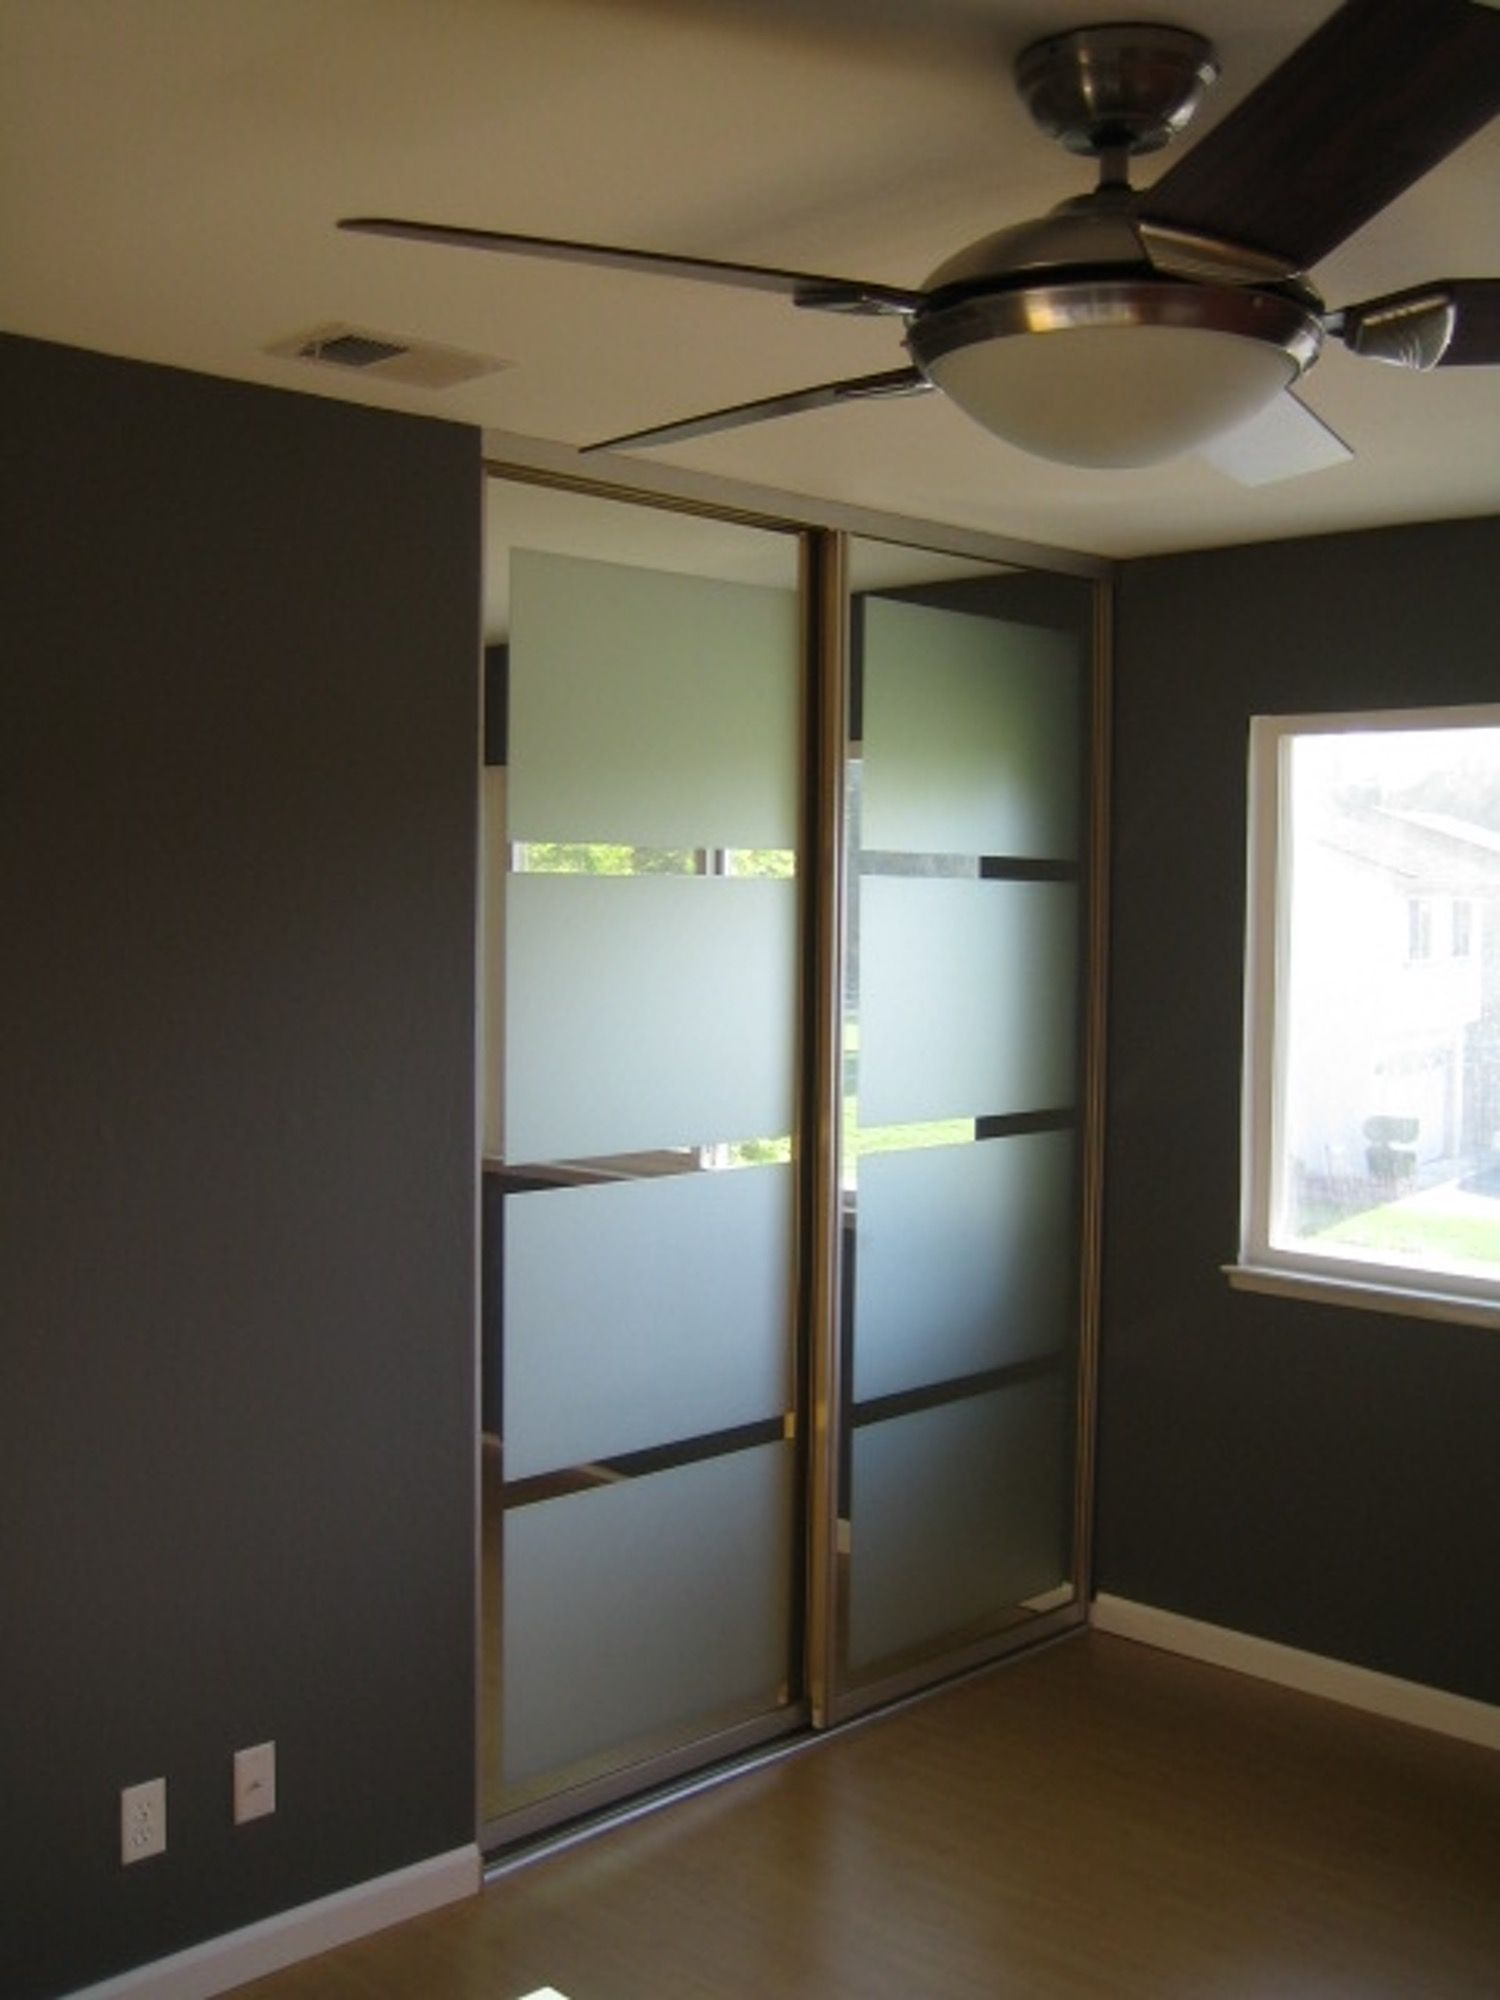 Mirrored Closet Doors The $25 Makeover